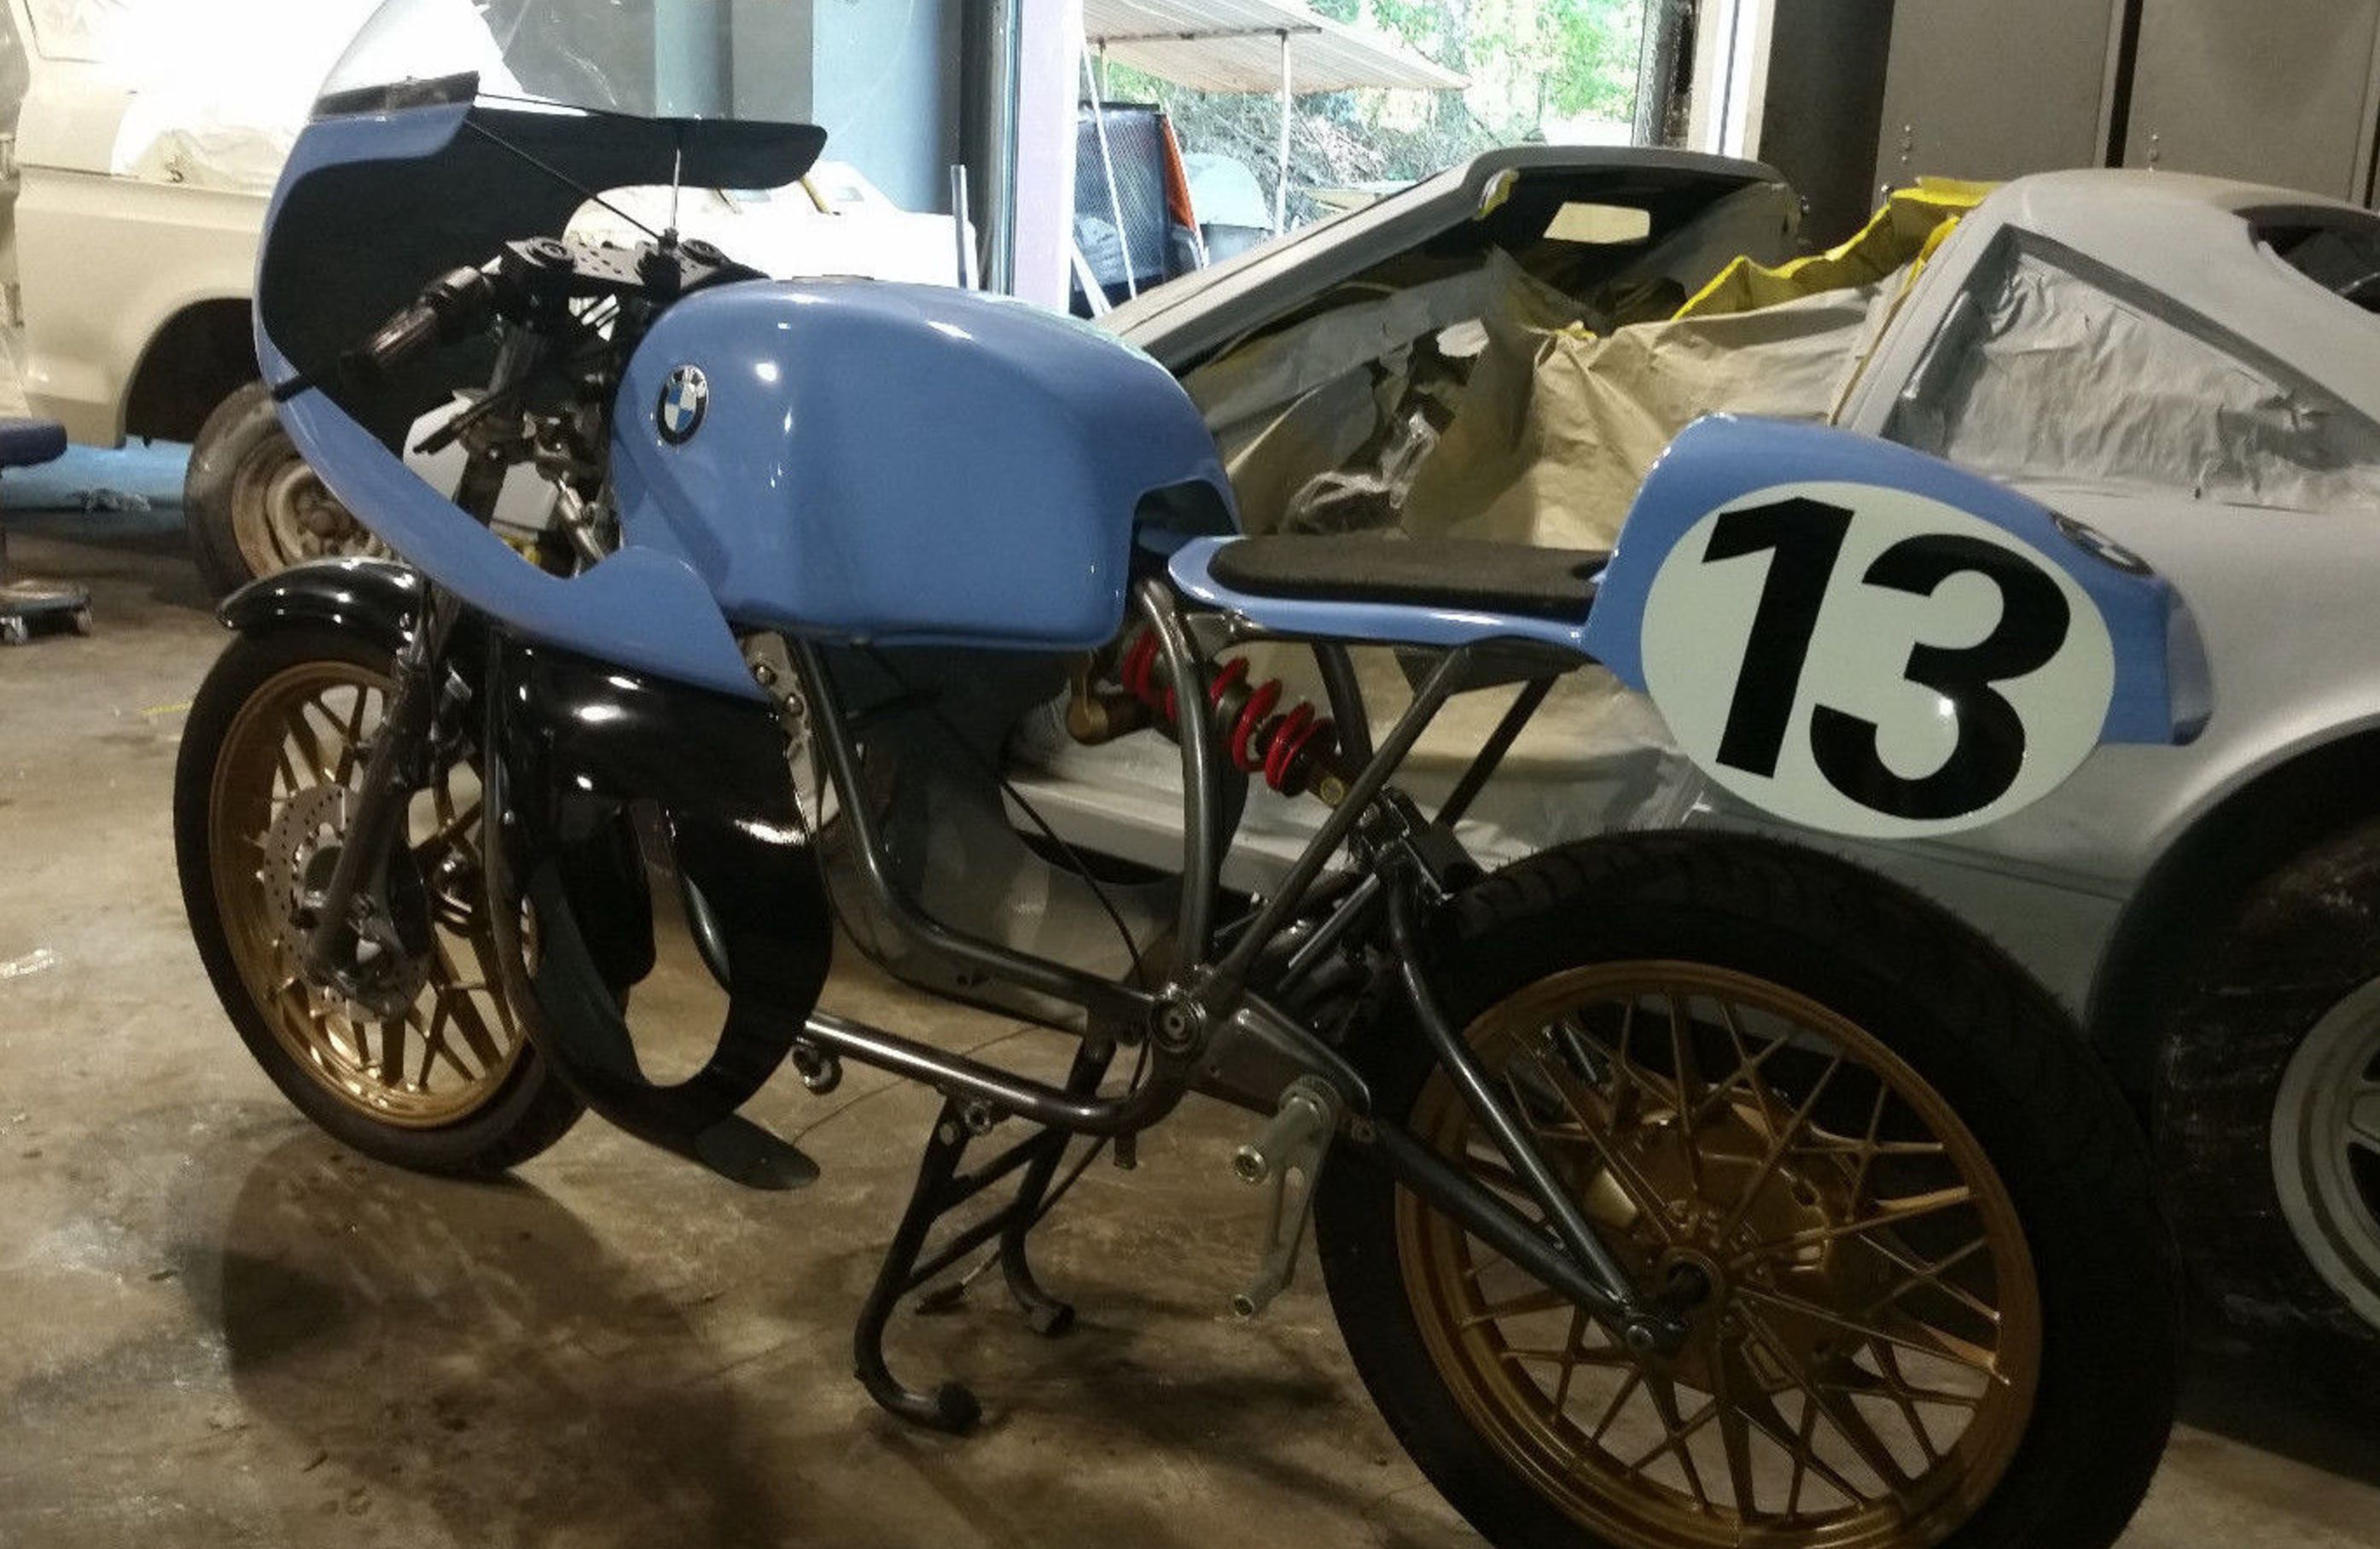 Racer Project – 1976 BMW R100 – Bike-urious